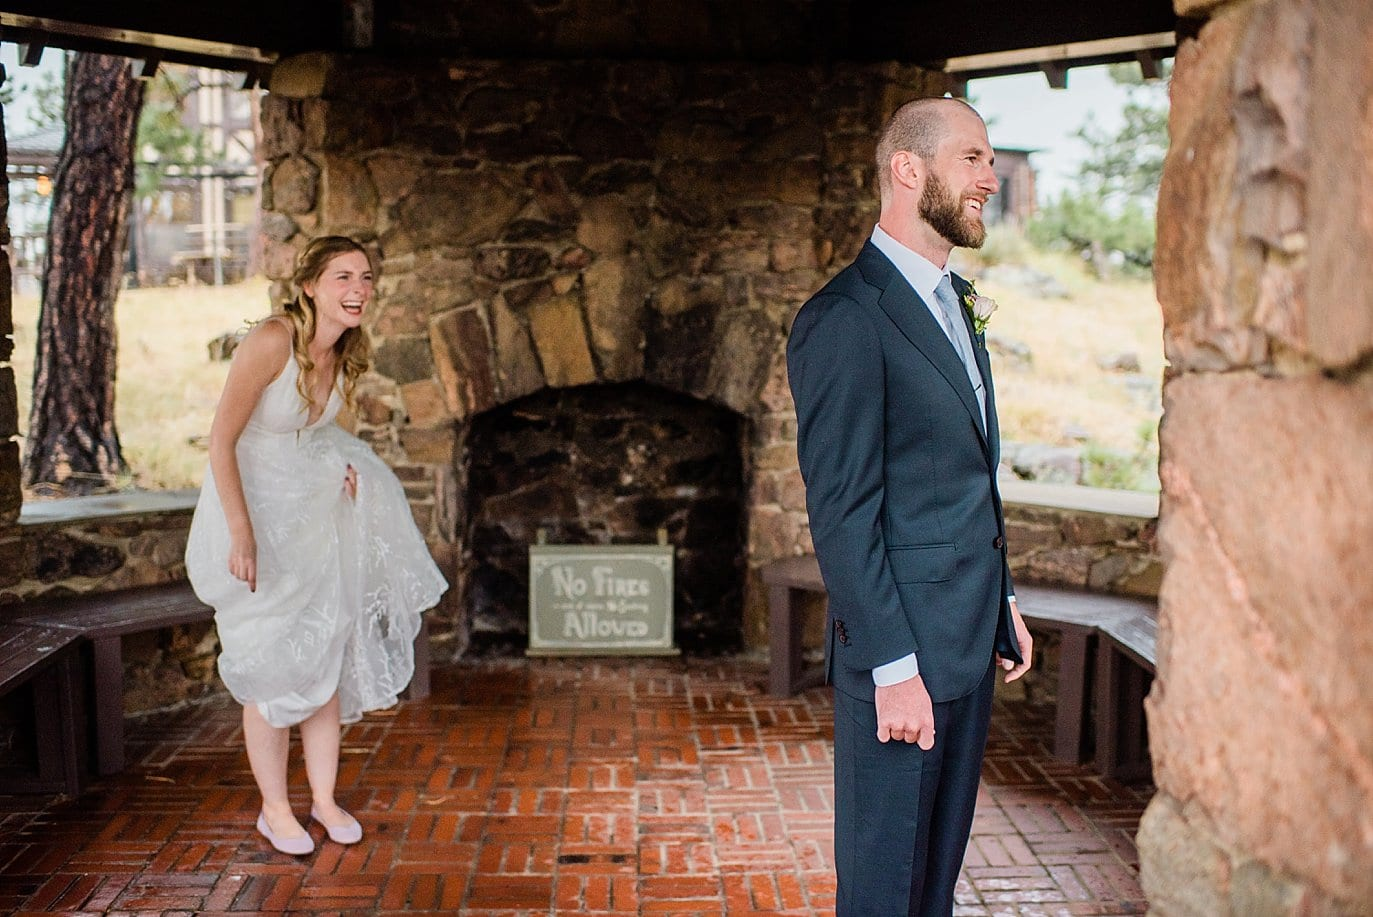 rainy first look in stone gazebo at Golden colorado wedding